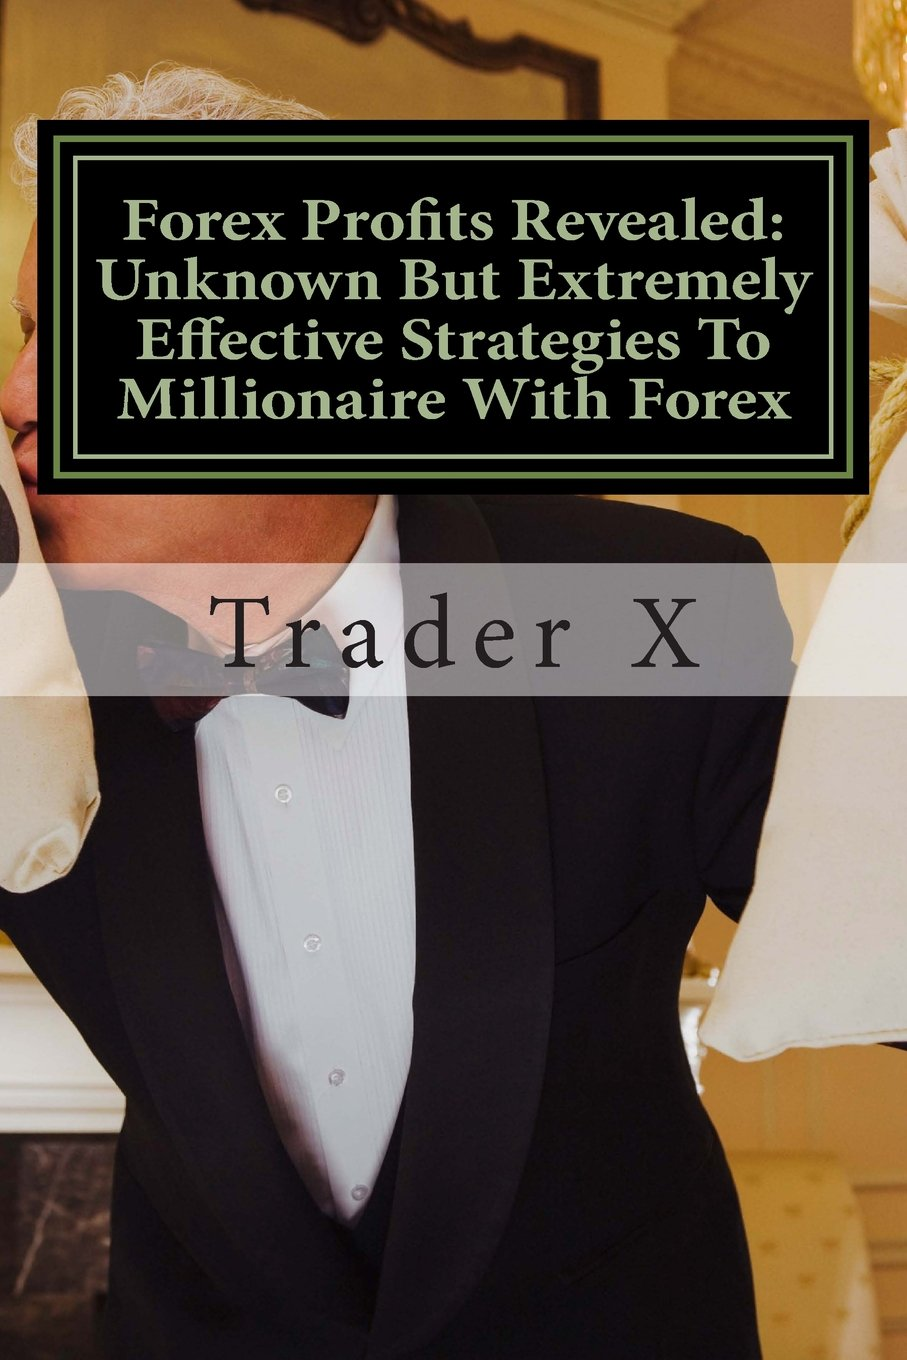 Download Forex Profits Revealed: Unknown But Extremely Effective Strategies To Millionaire With Forex: Little Dirty Secrets And Unpopular,But Very Simple Tricks To Pull Massive Piles Of Cash In You Account ebook